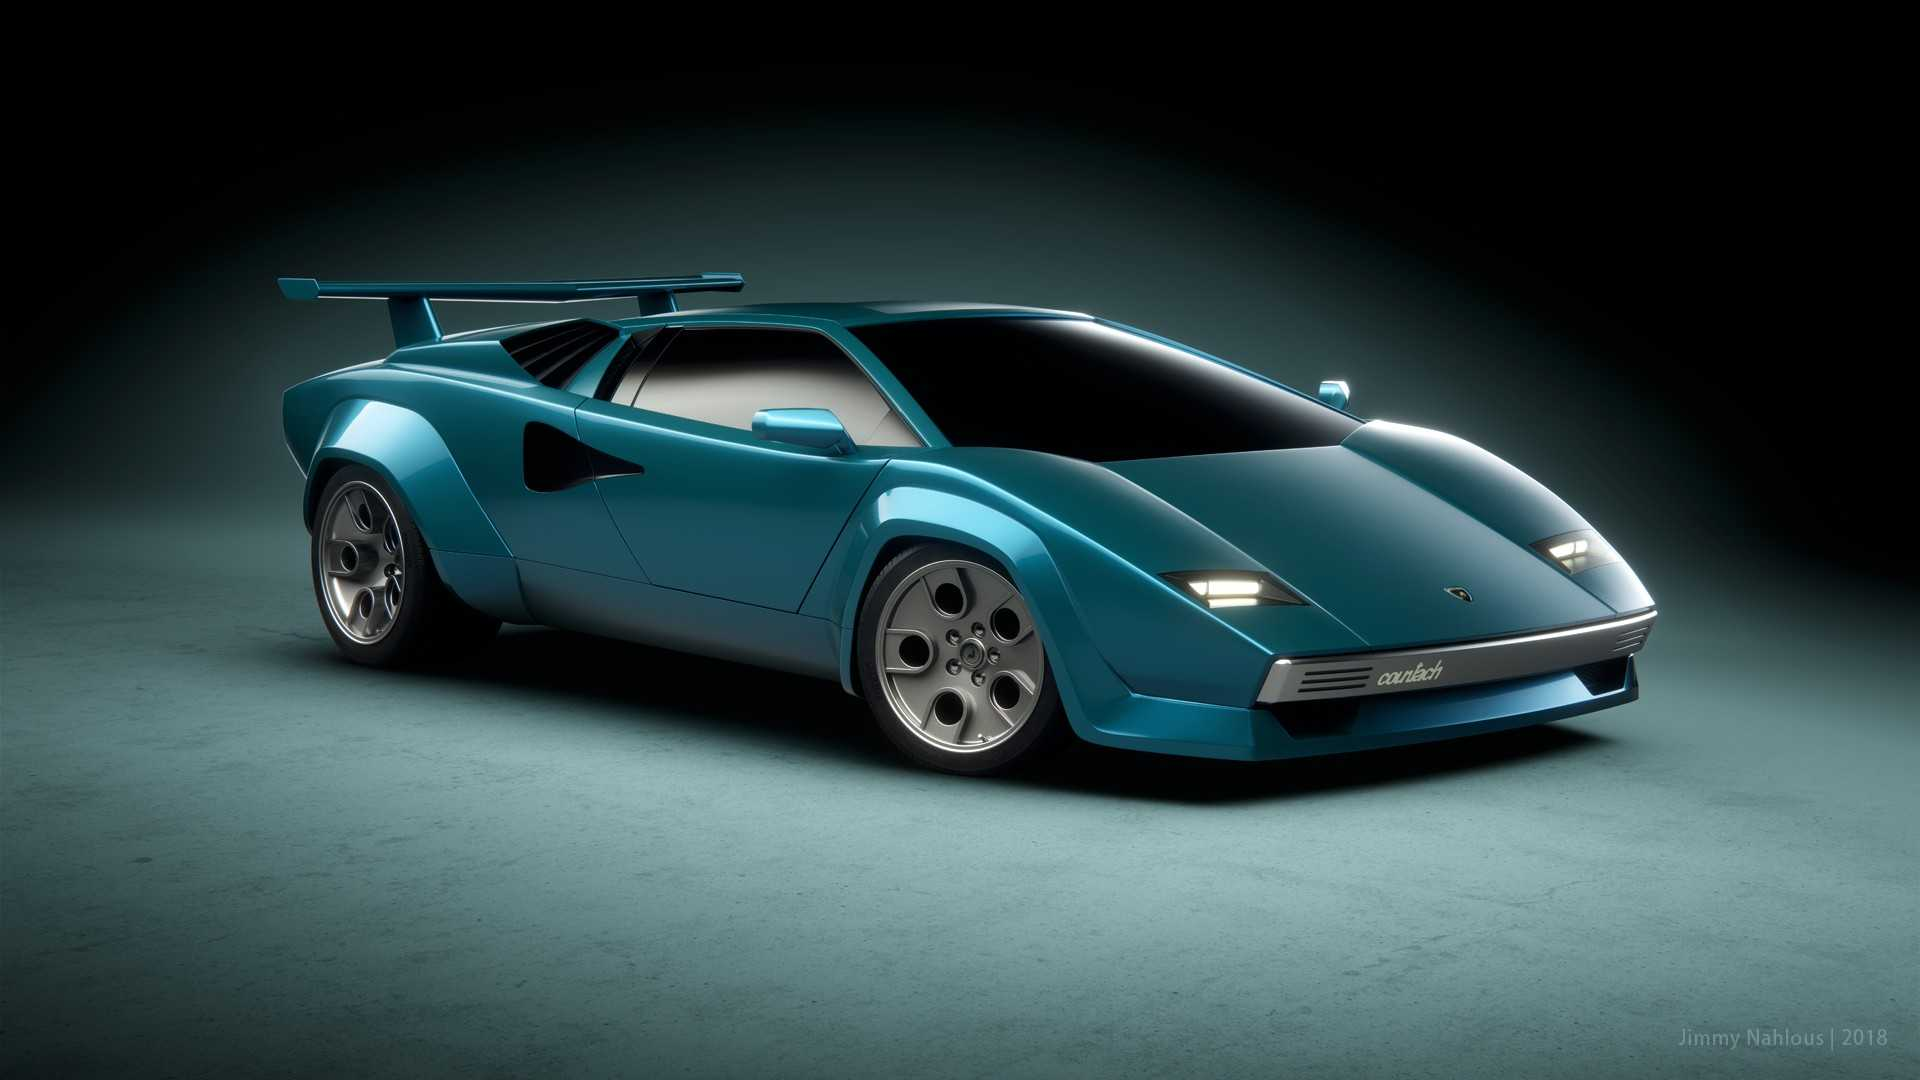 Lamborghini Countach Render Is What Bedroom Posters Are Made Of